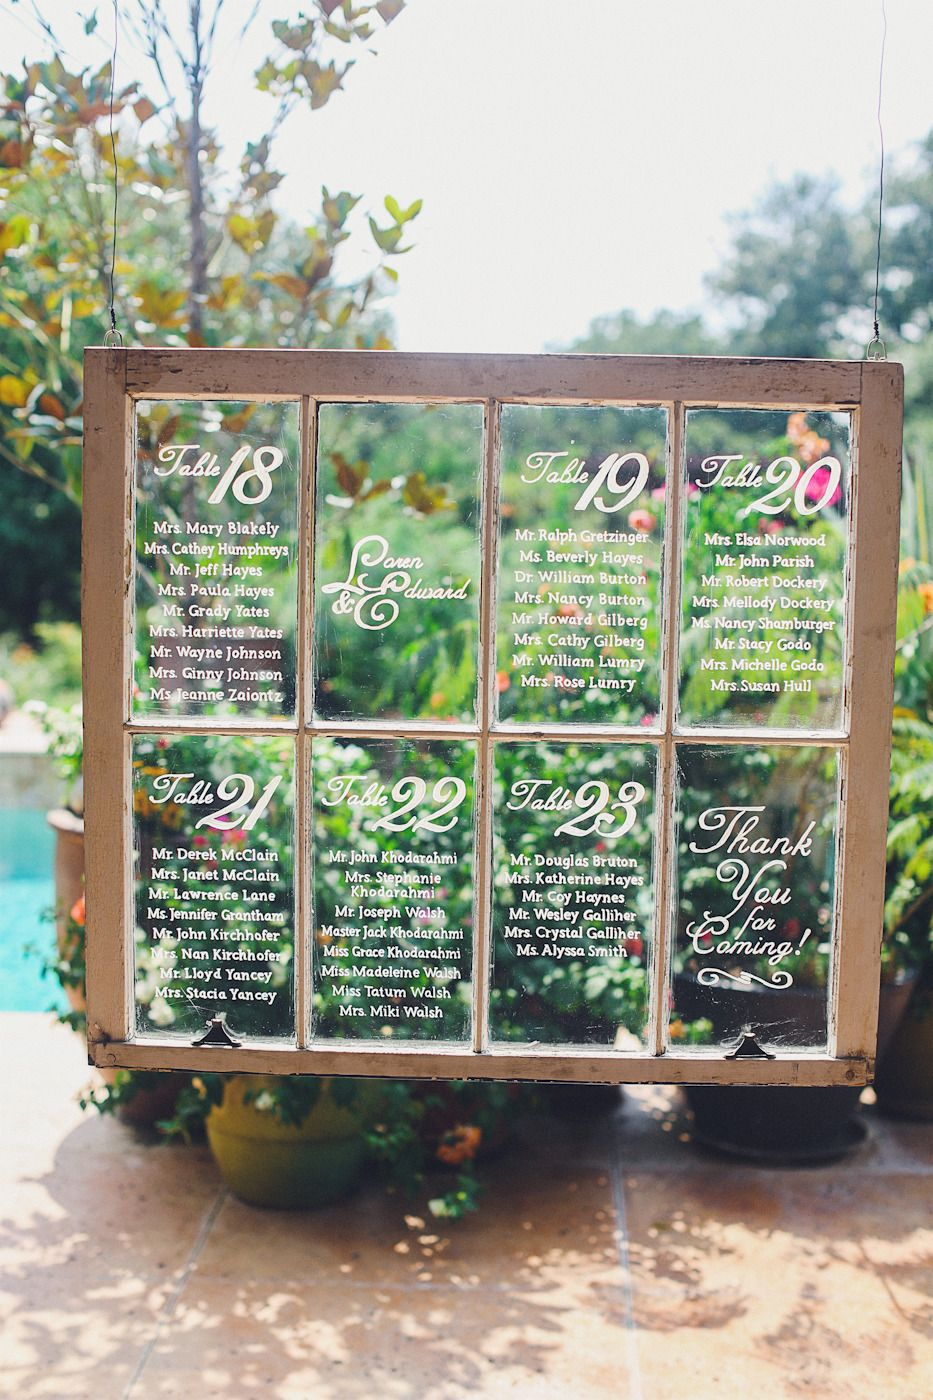 Vintage window pane seating plan potential for escort cards also rustic wild onion ranch wedding bliss pinterest rh